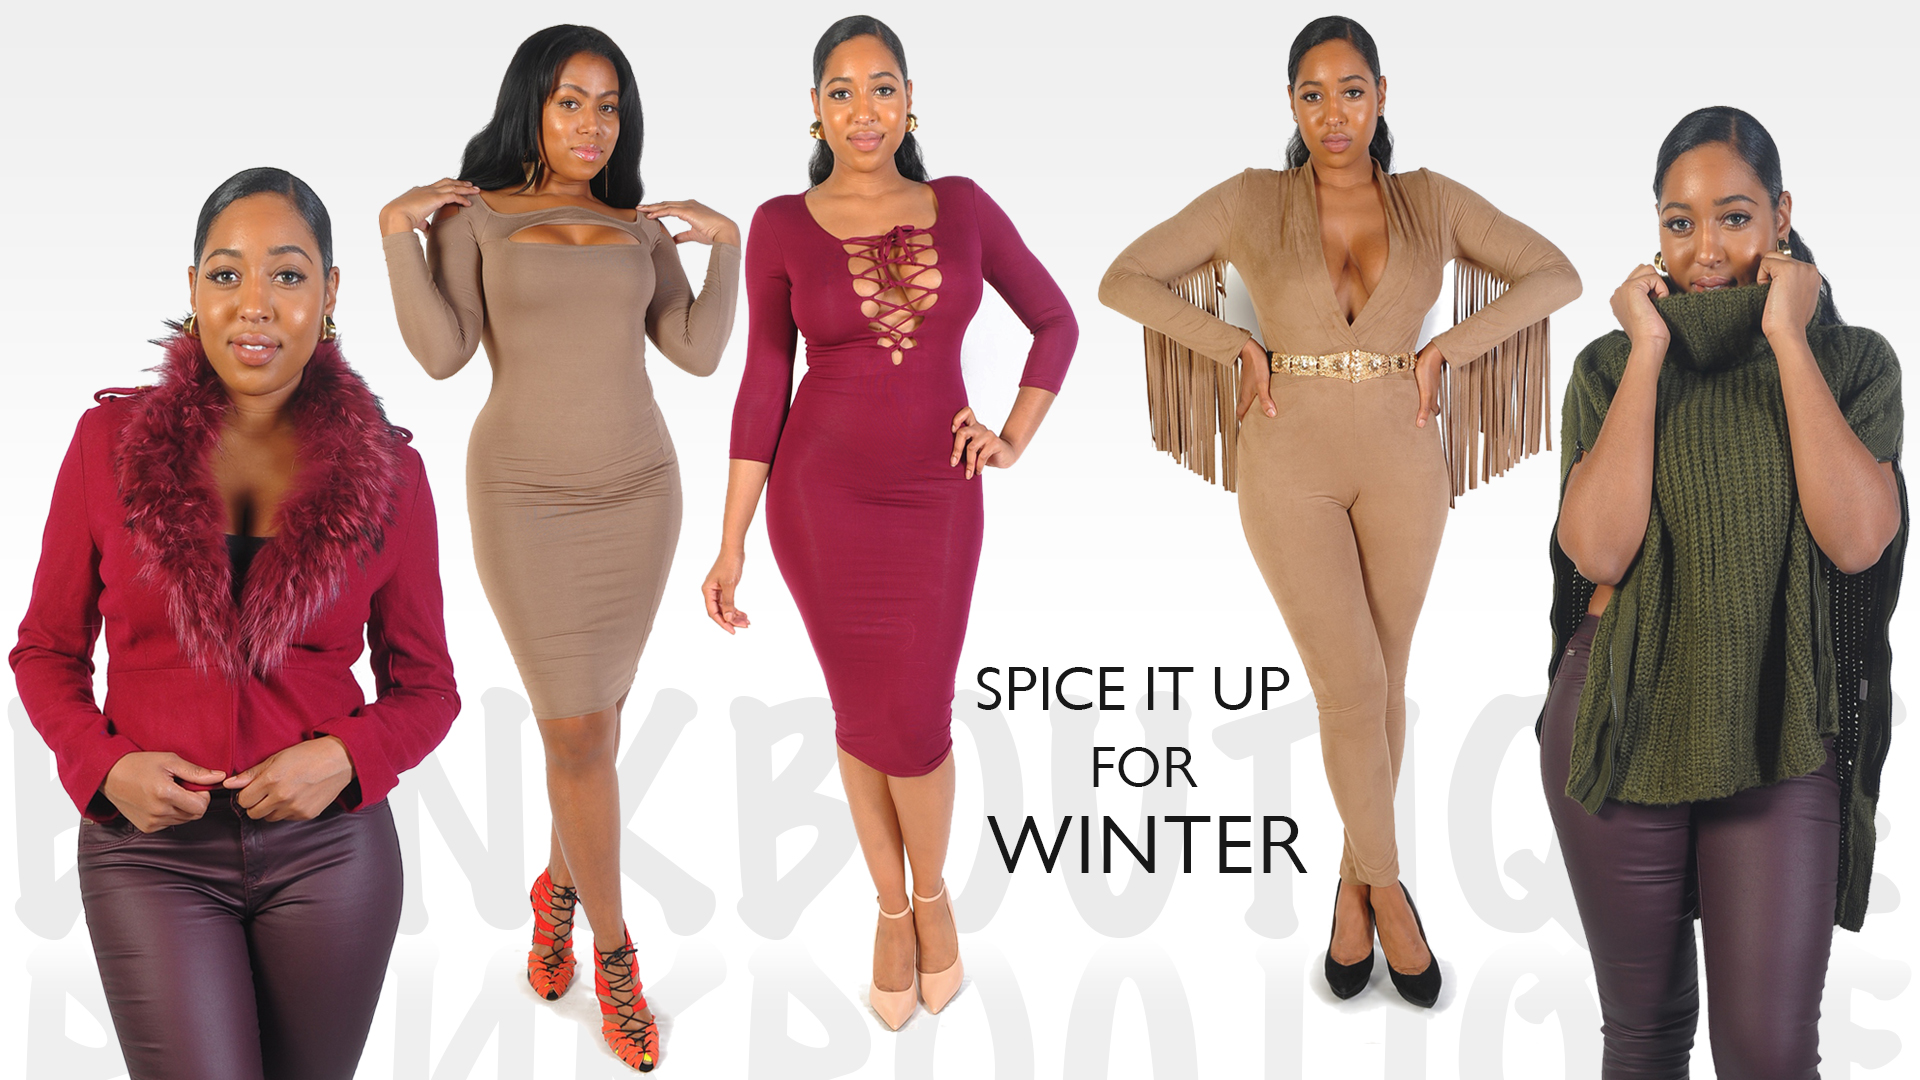 spice-it-up-for-winter-42994.jpg